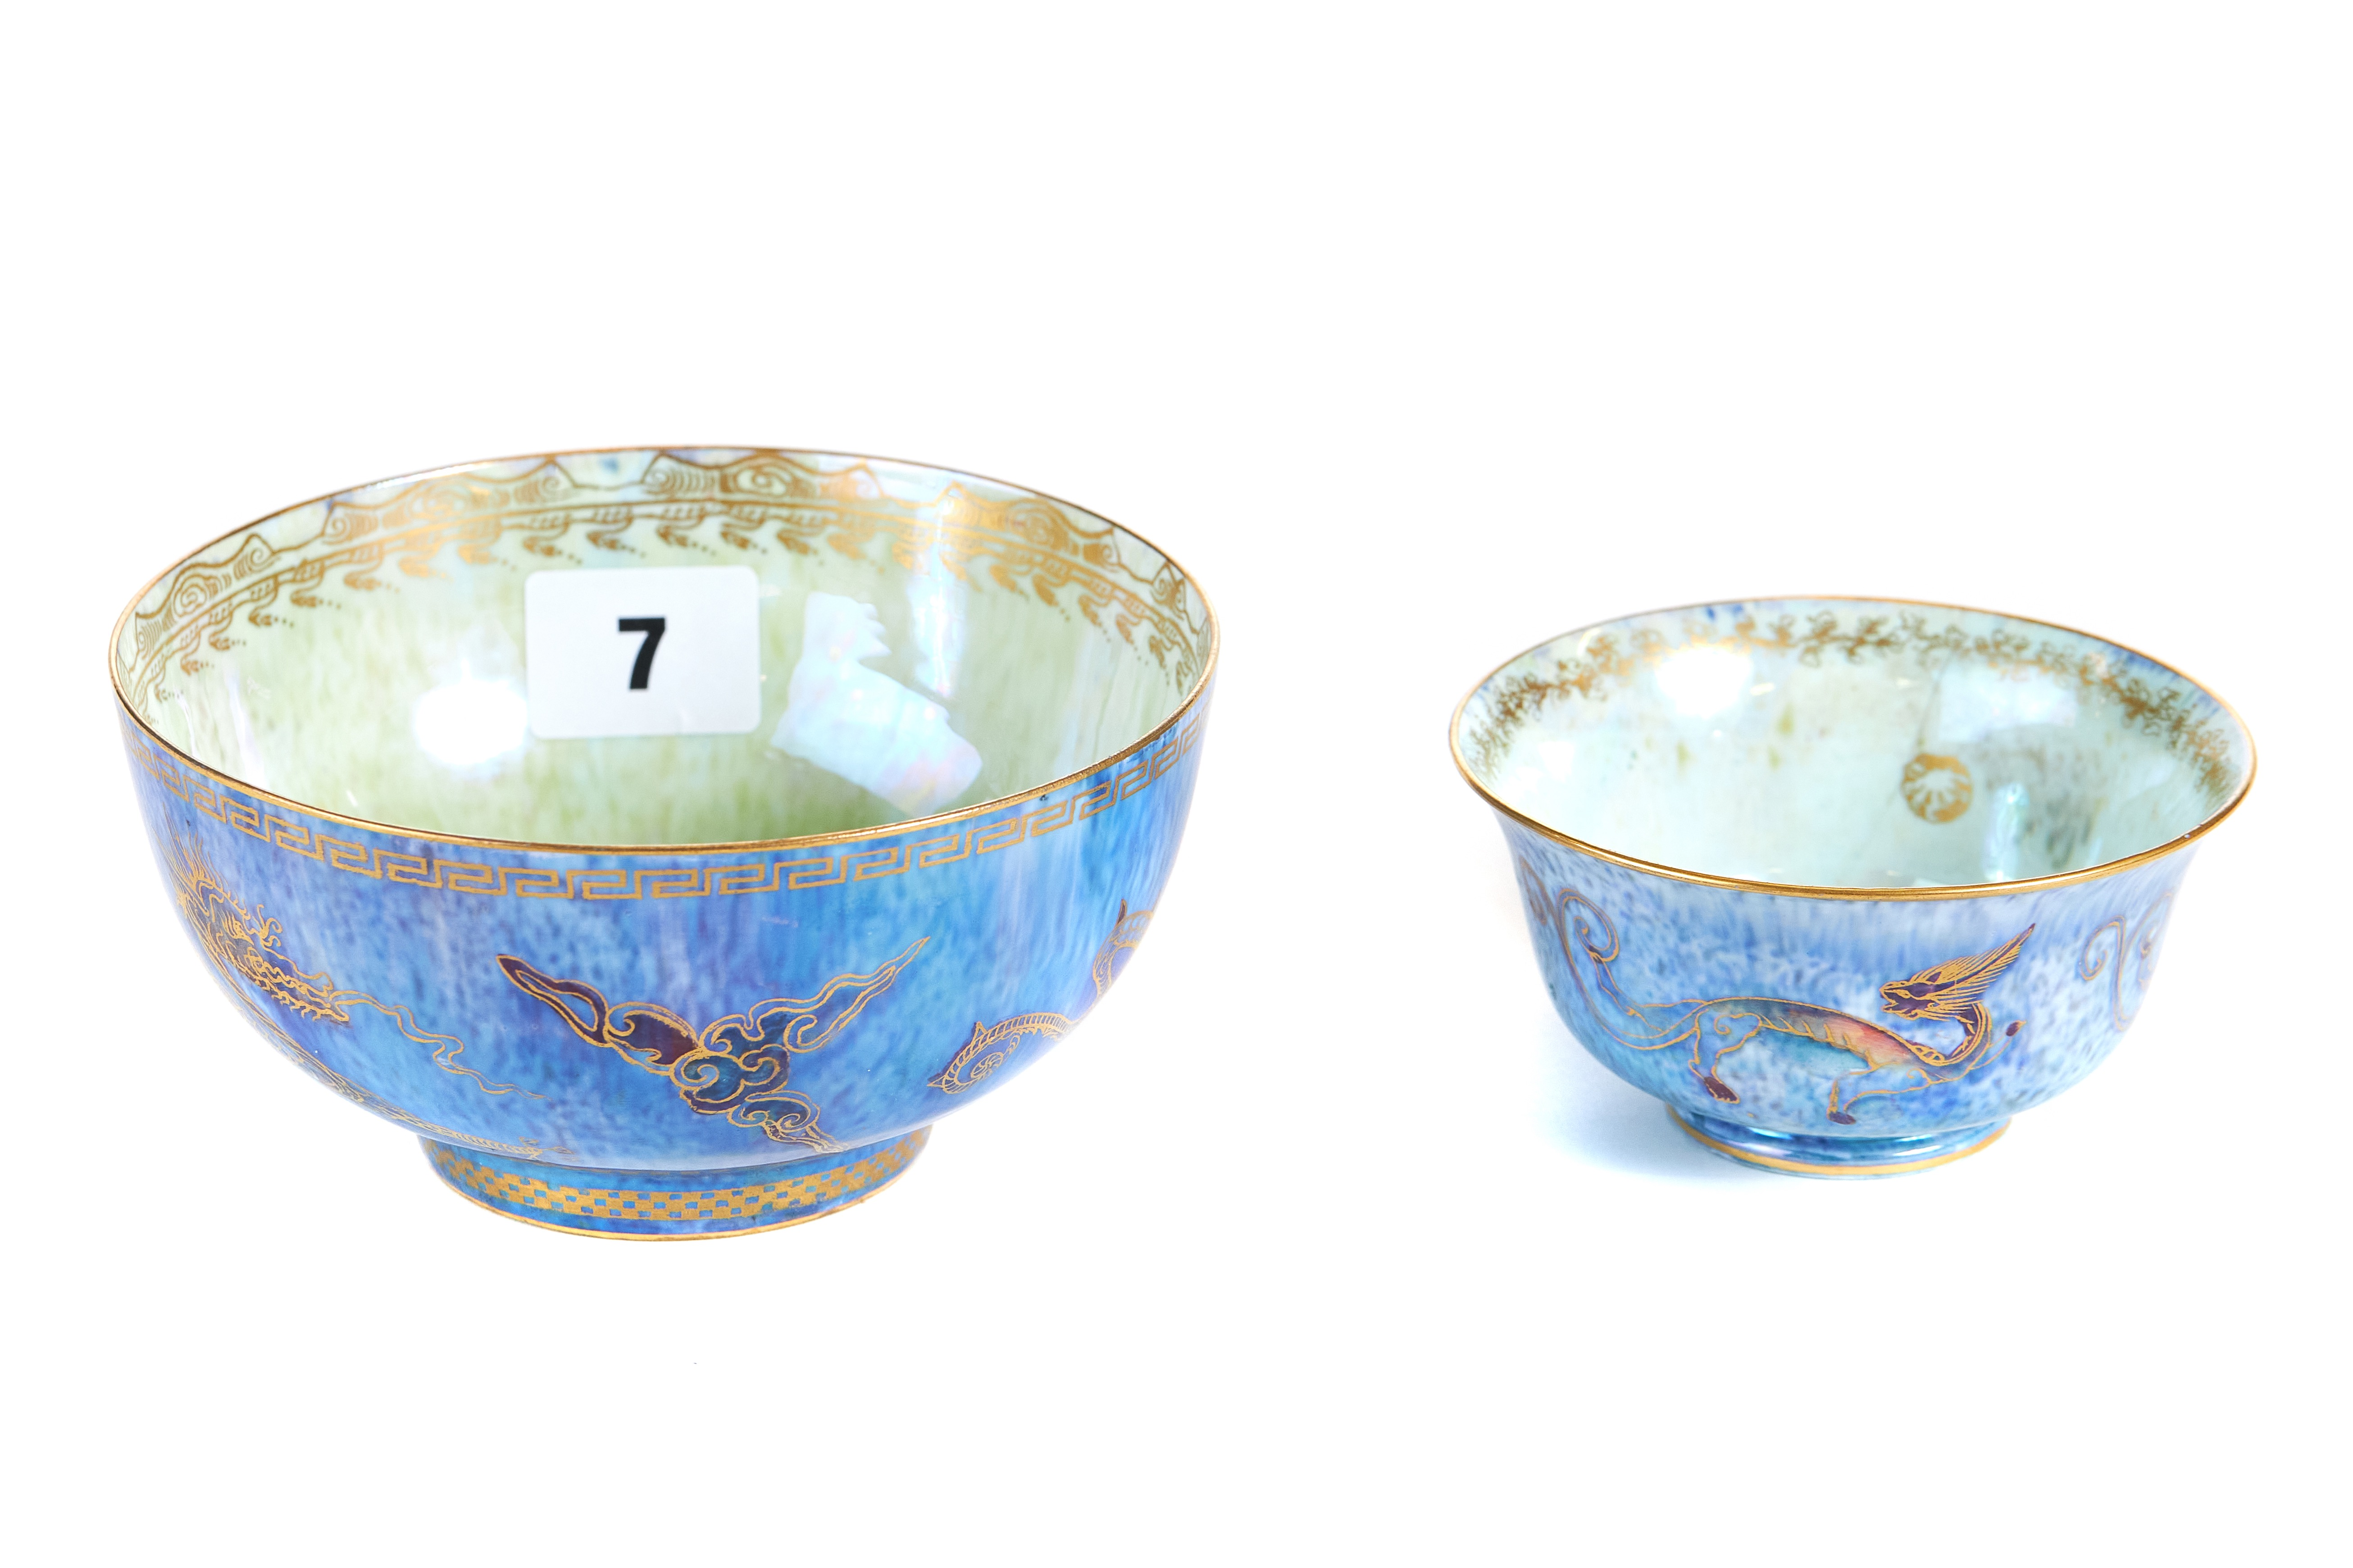 Lot 7 - AN EARLY 20TH CENTURY WEDGWOOD LUSTRE WARE CIRCULAR BOWL external blue ground with gilt dragons and